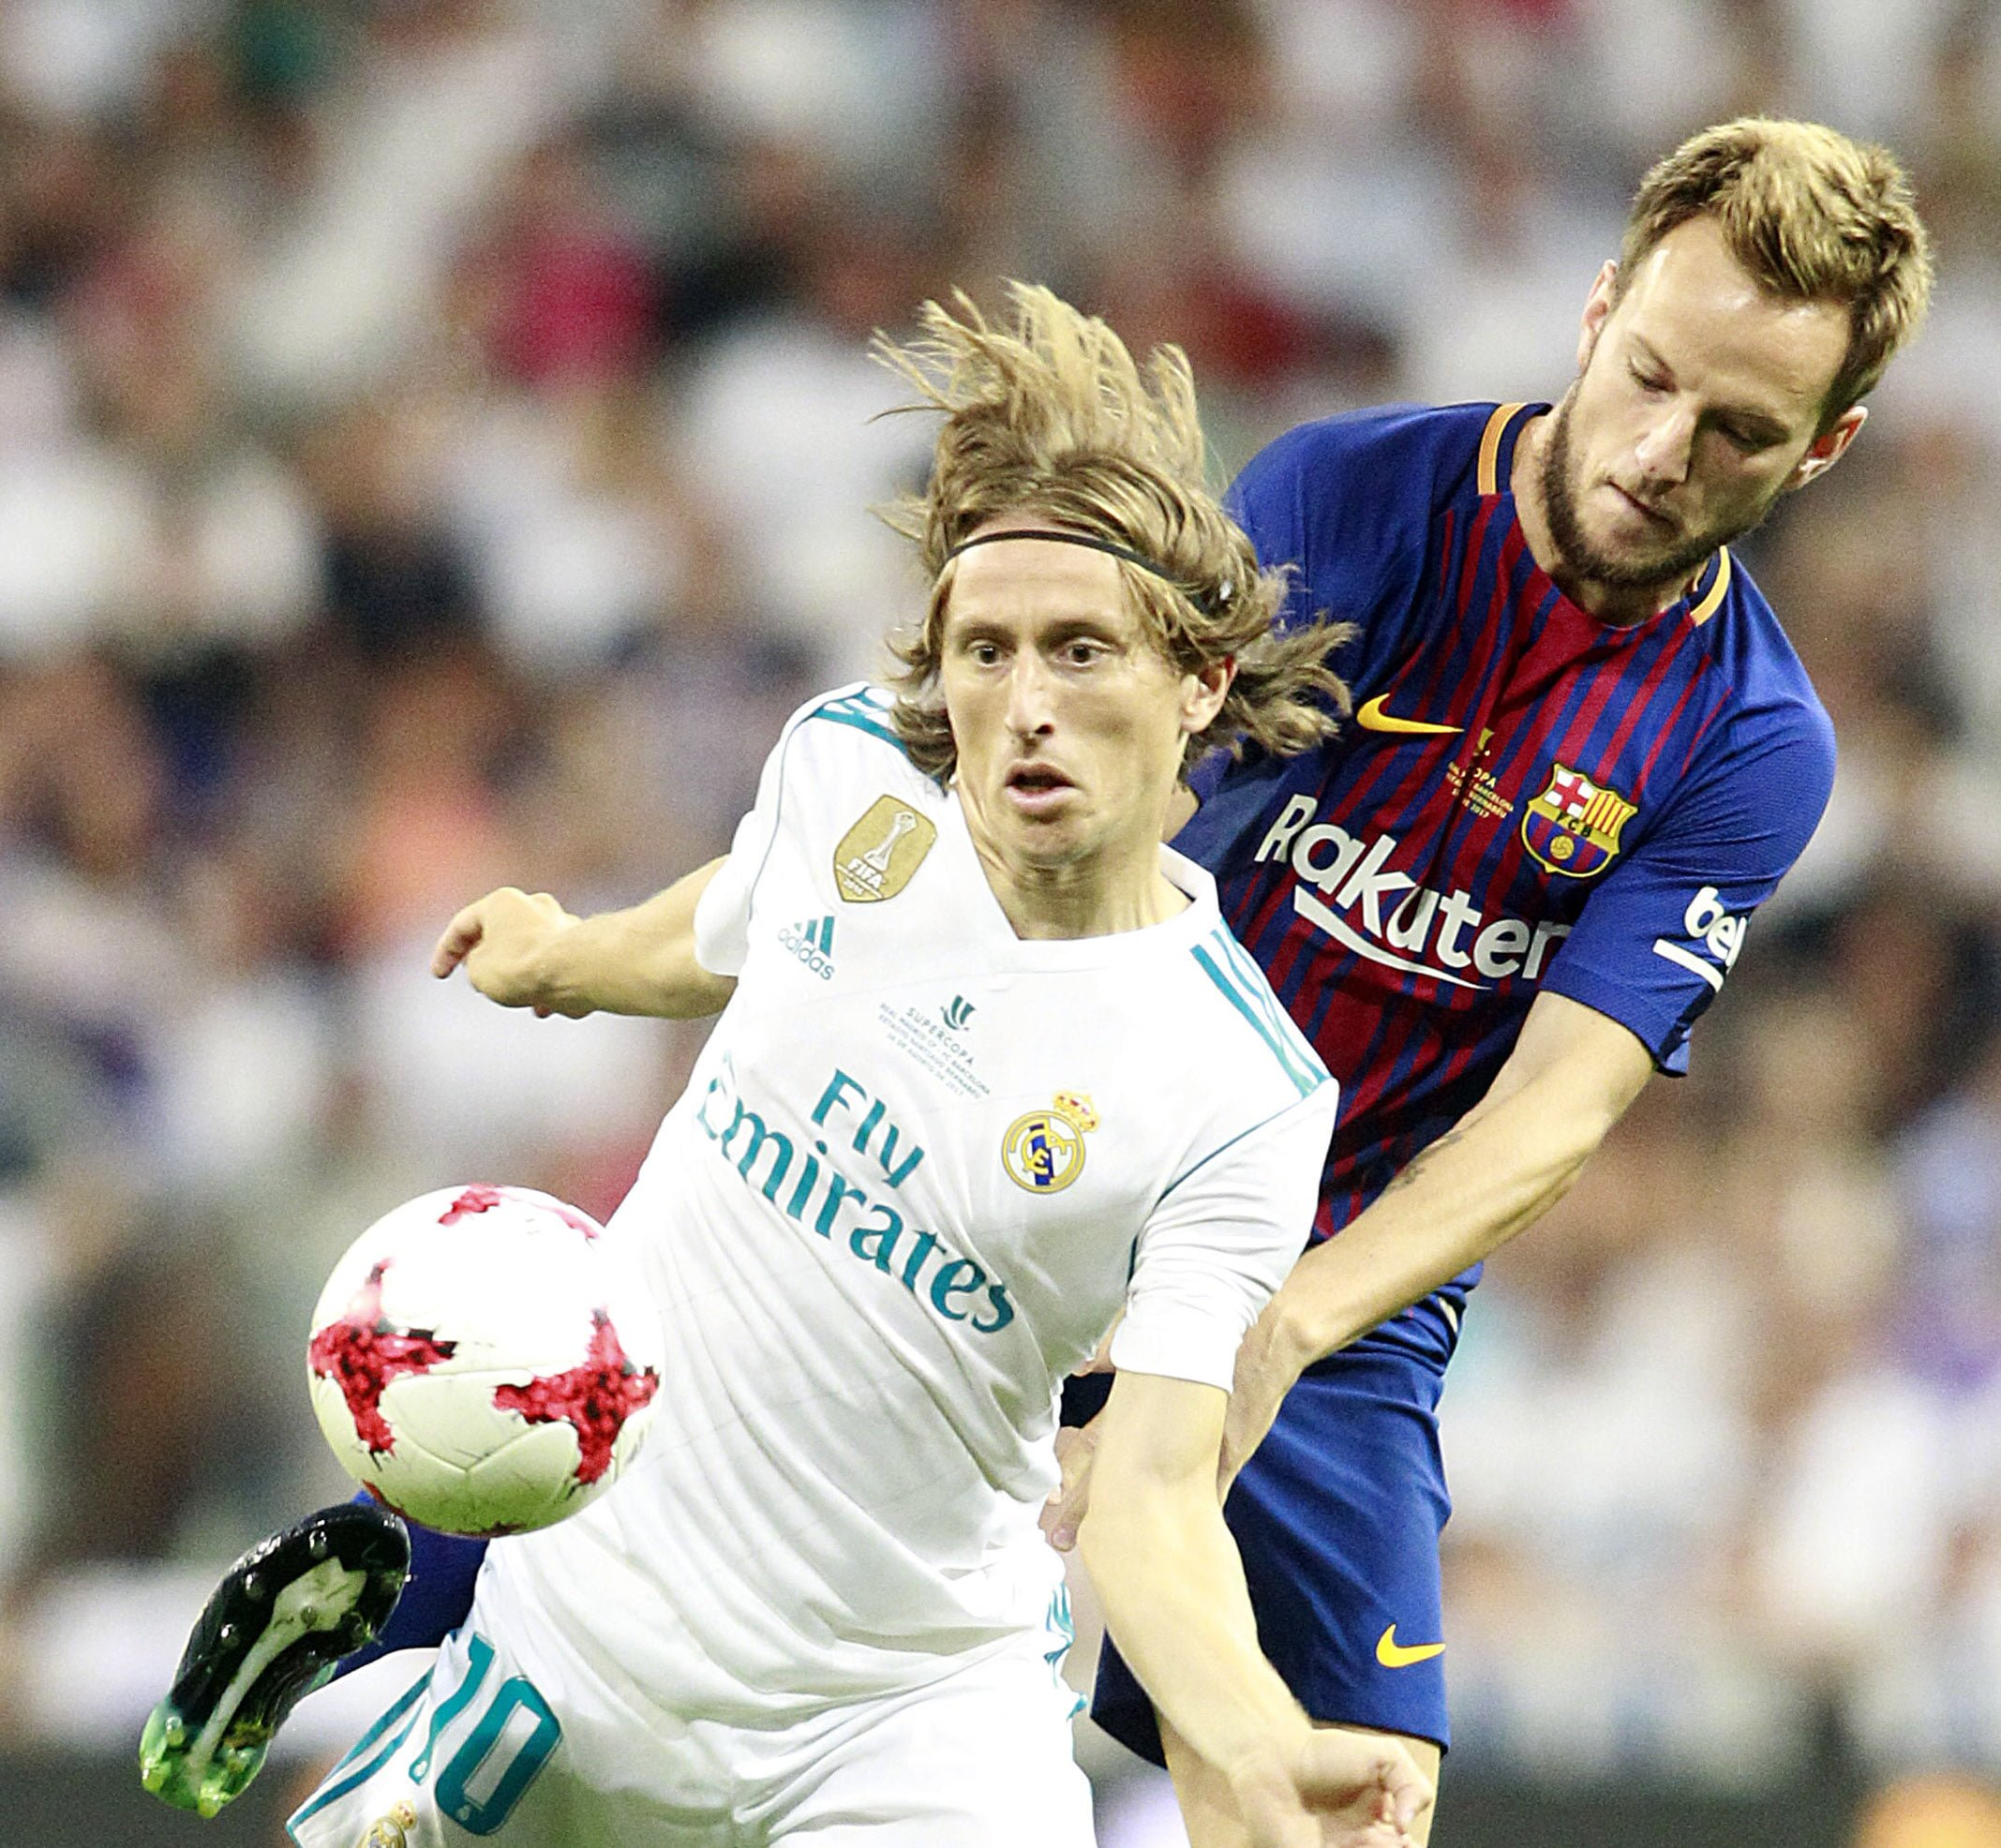 Real Madrid's Luka Modric (l) and FC Barcelona's Ivan Rakitic during Supercup of Spain 2nd match in Madrid, Spain, on August 16, 2017. Photo by Acero/Alterphotos/ABACAPRESS.COM FOT. ABACAPRESS.COM / NEWSPIX.PL POLAND ONLY !!! --- Newspix.pl